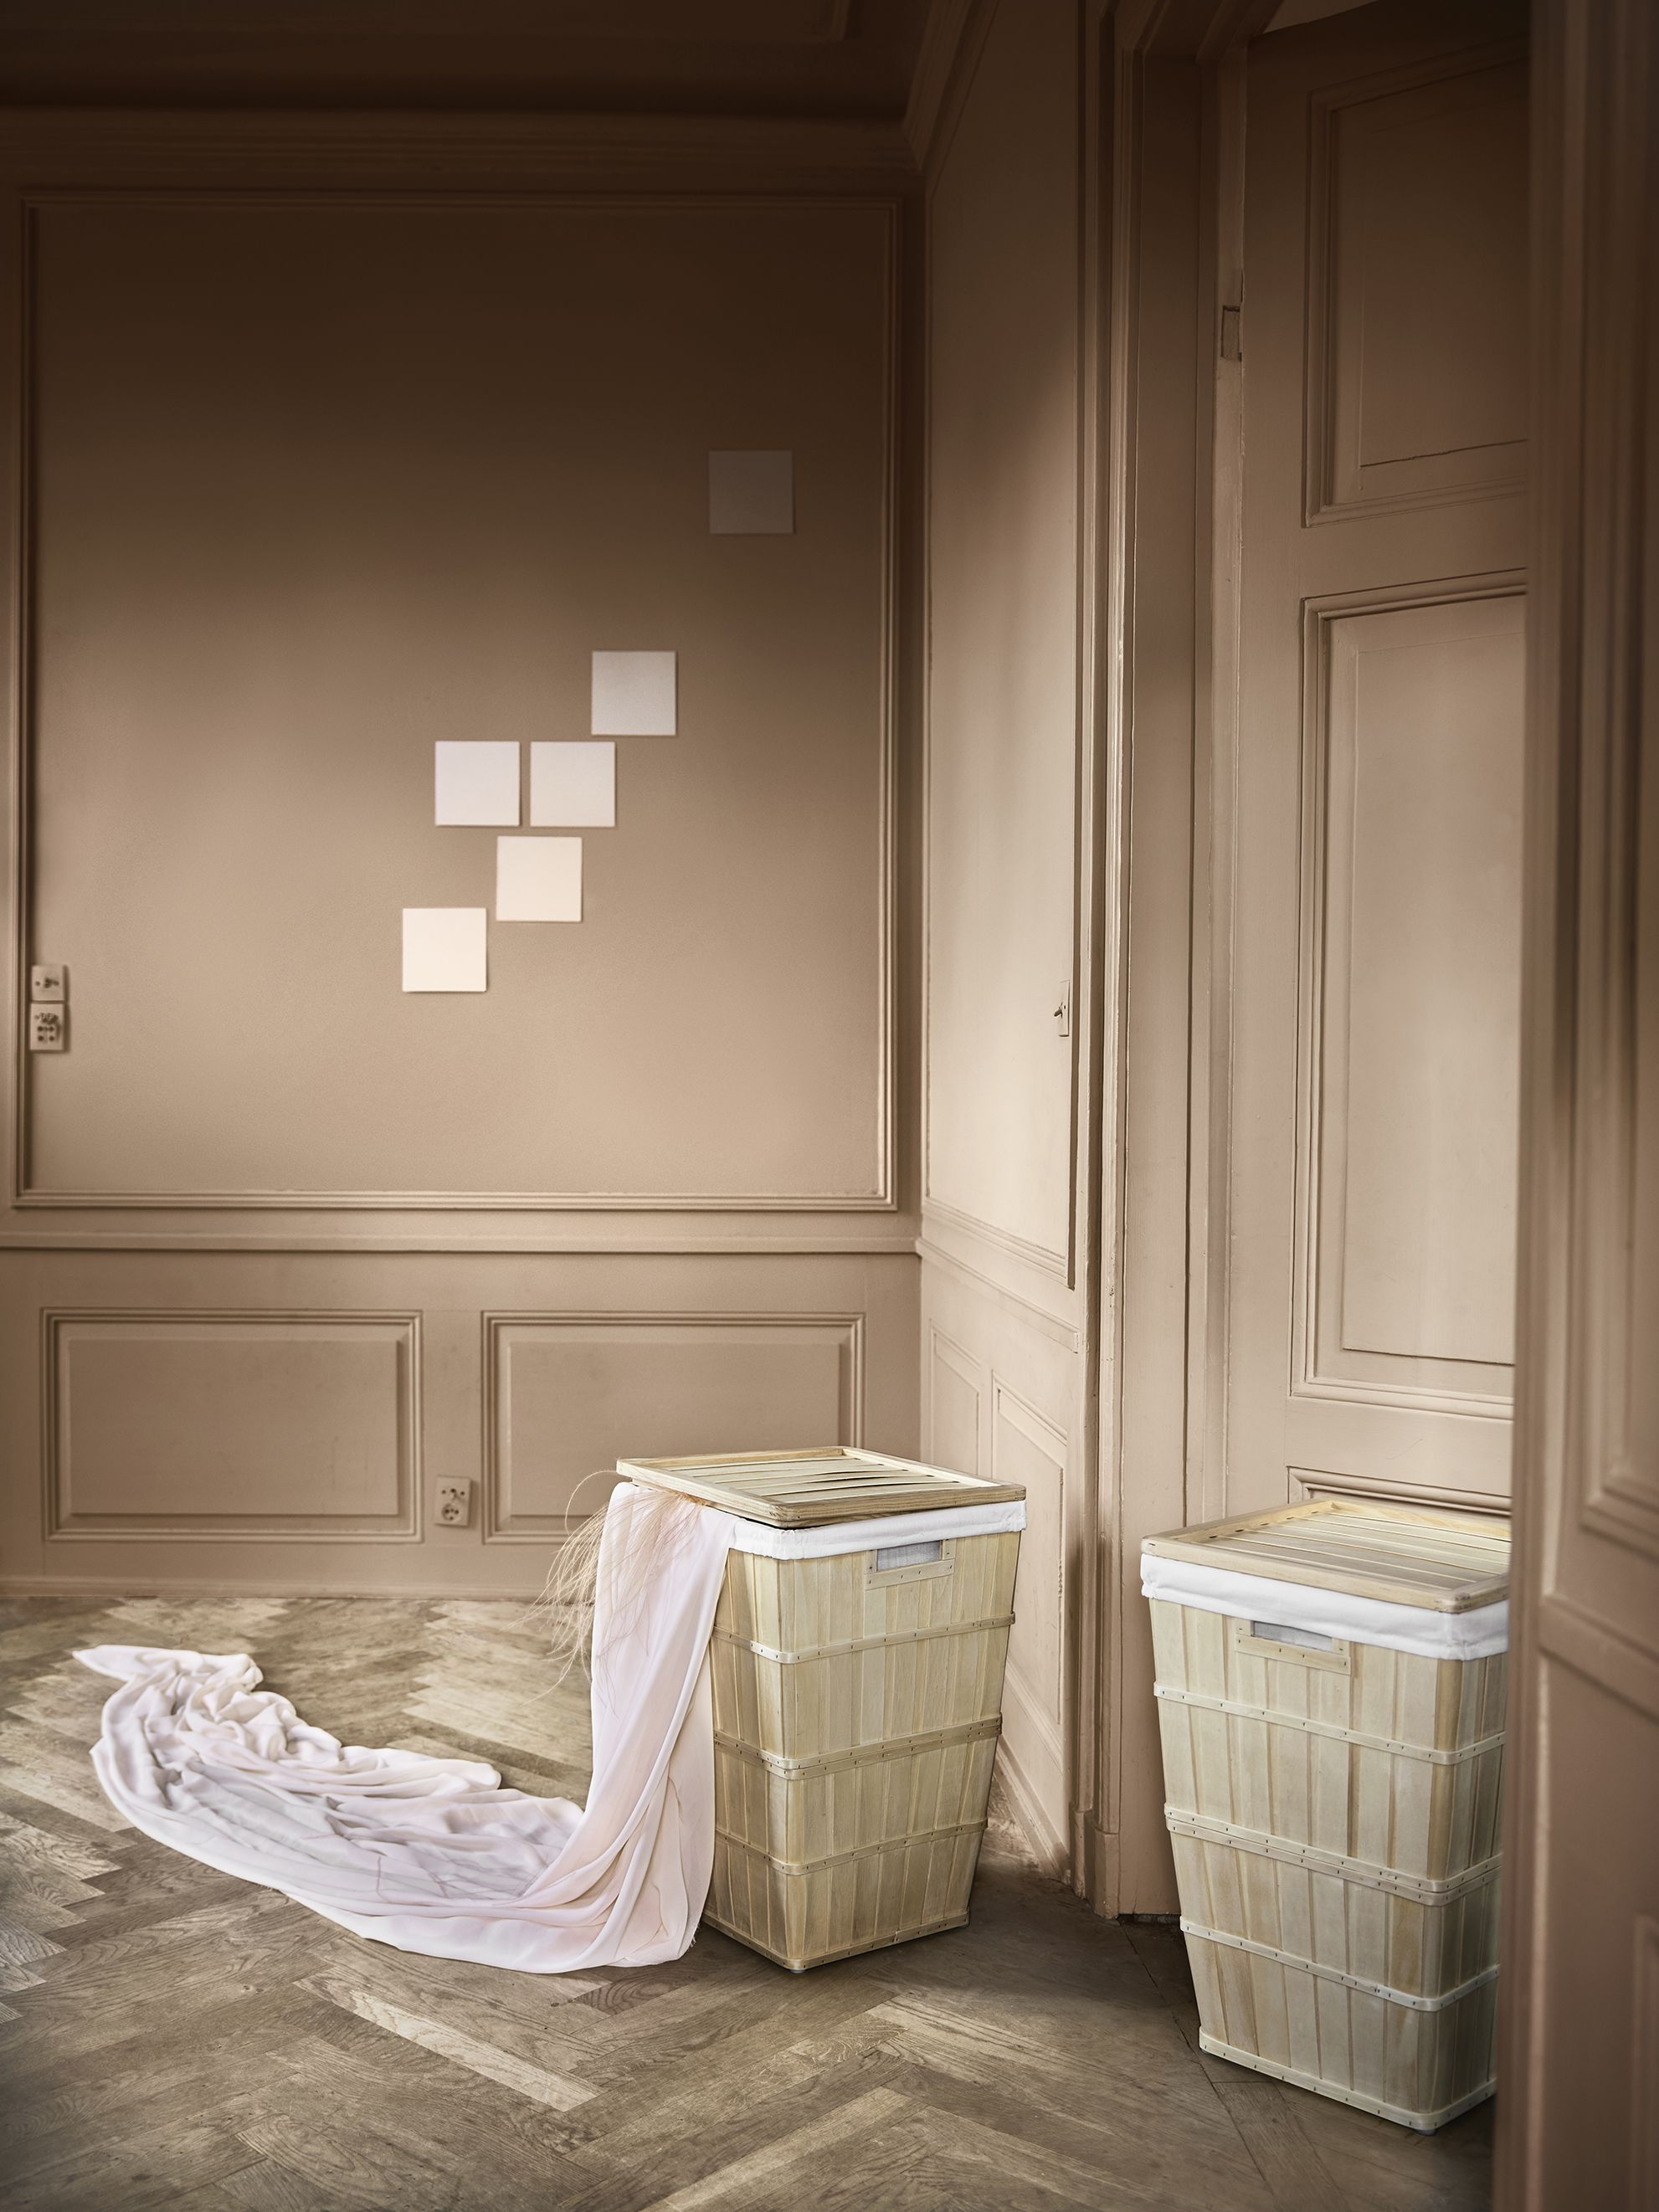 Old Ikea Products with a look from the old days, brankis laundry basket has all the